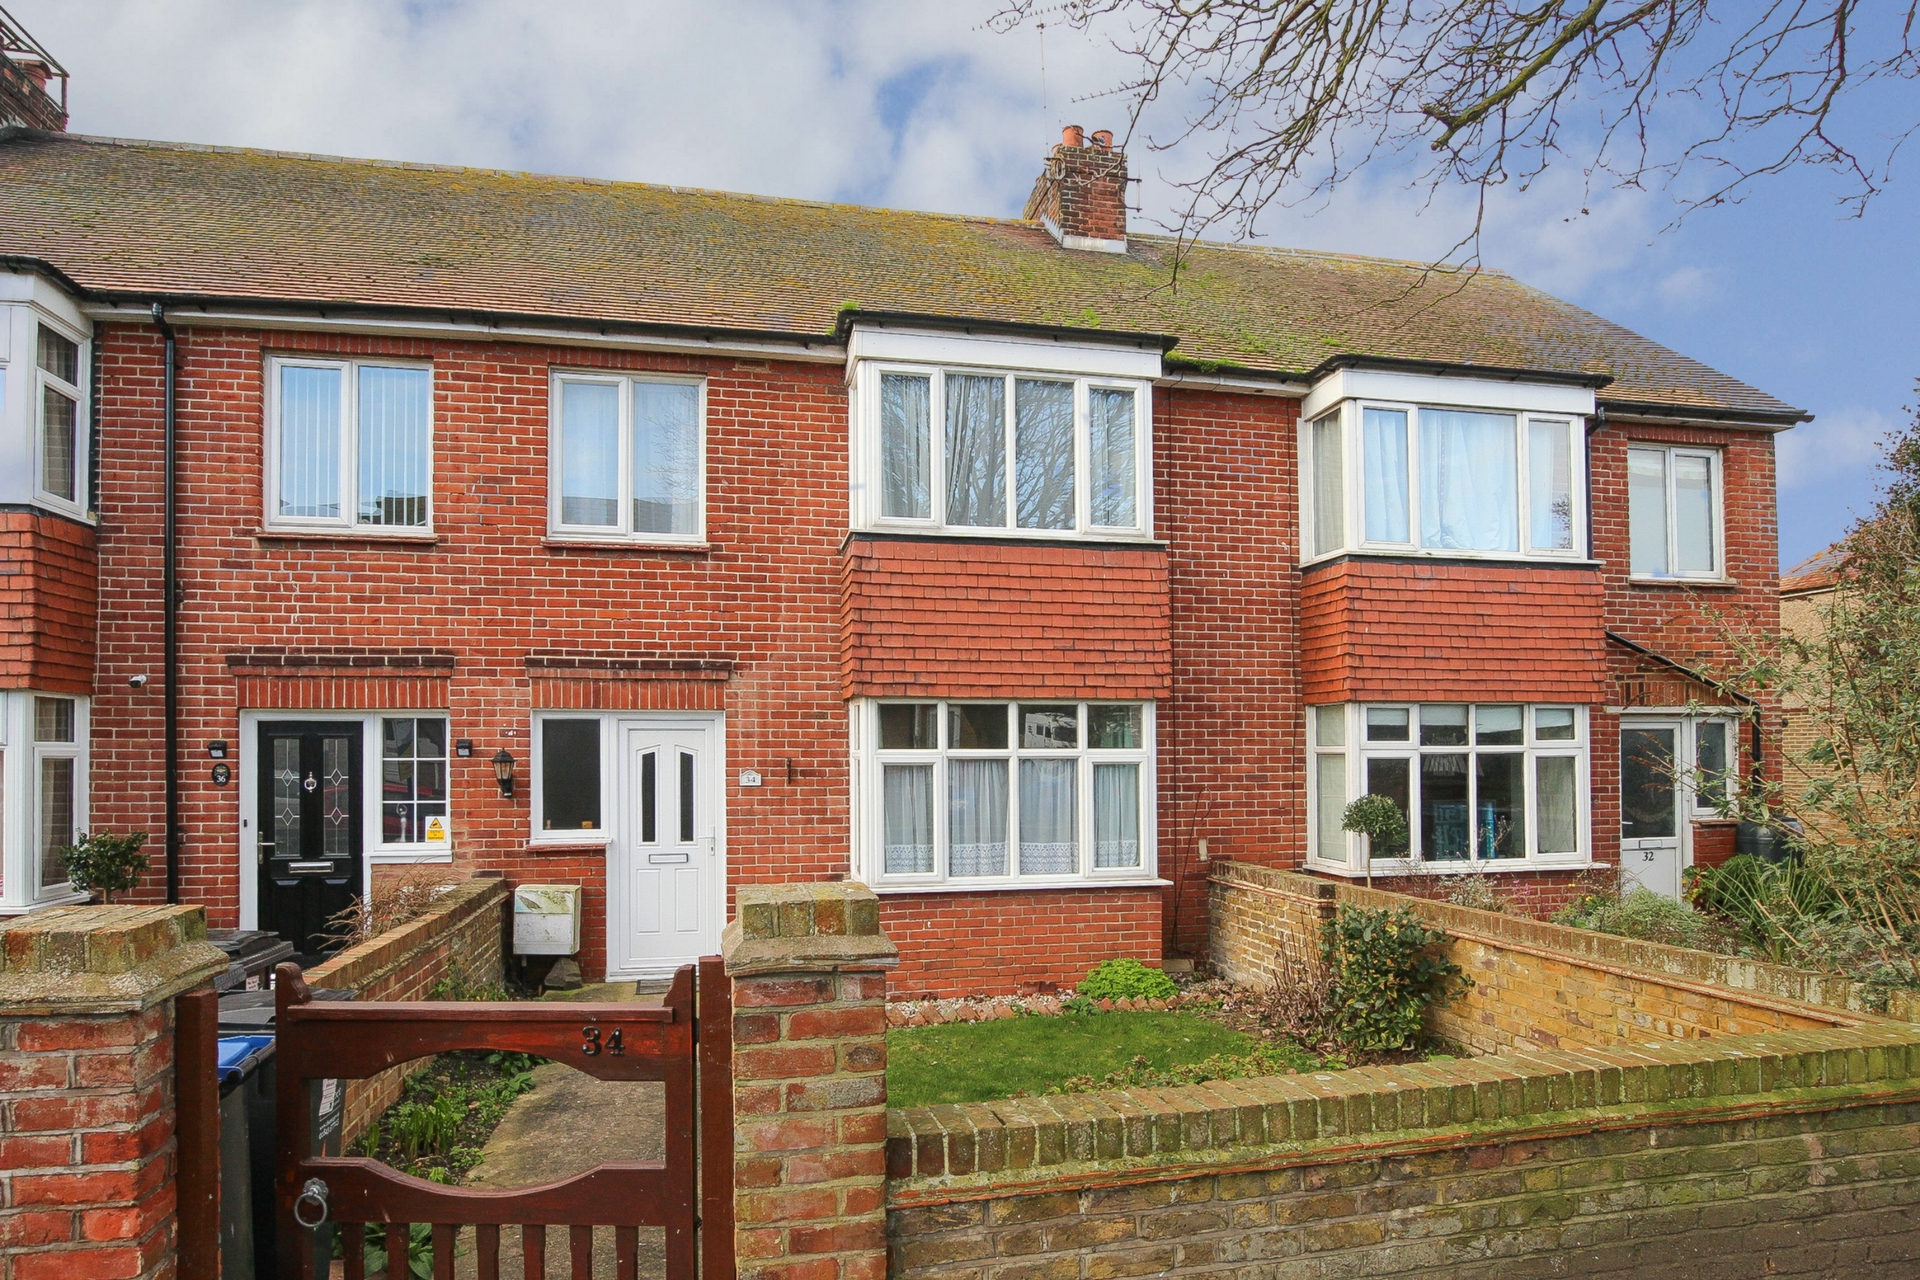 3 bed terraced house for sale in Ethelbert Road, Birchington, CT7  - Property Image 1